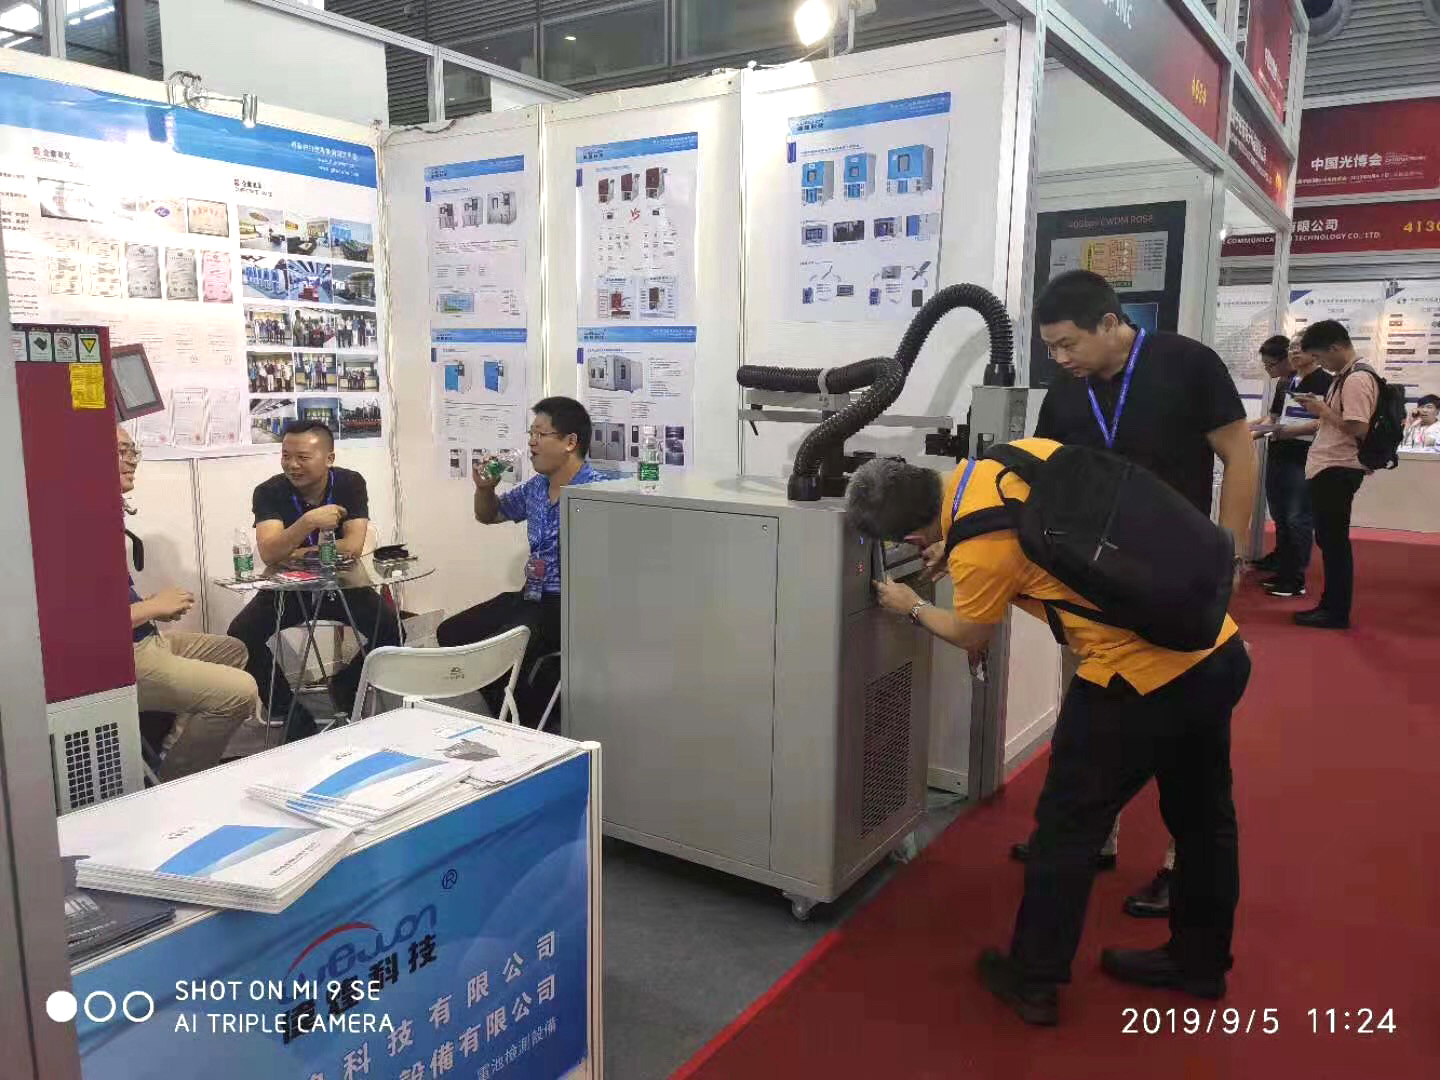 Wewon Environmental Chambers Co., Ltd. has attend the China International Optoelectronic Exposition CIOE from September 04, 2019 until September 07, 2019. We have prepared the TK series climatic chamber with red color and ATS 710 model new design temperature forcing system displayed on this exhibition.